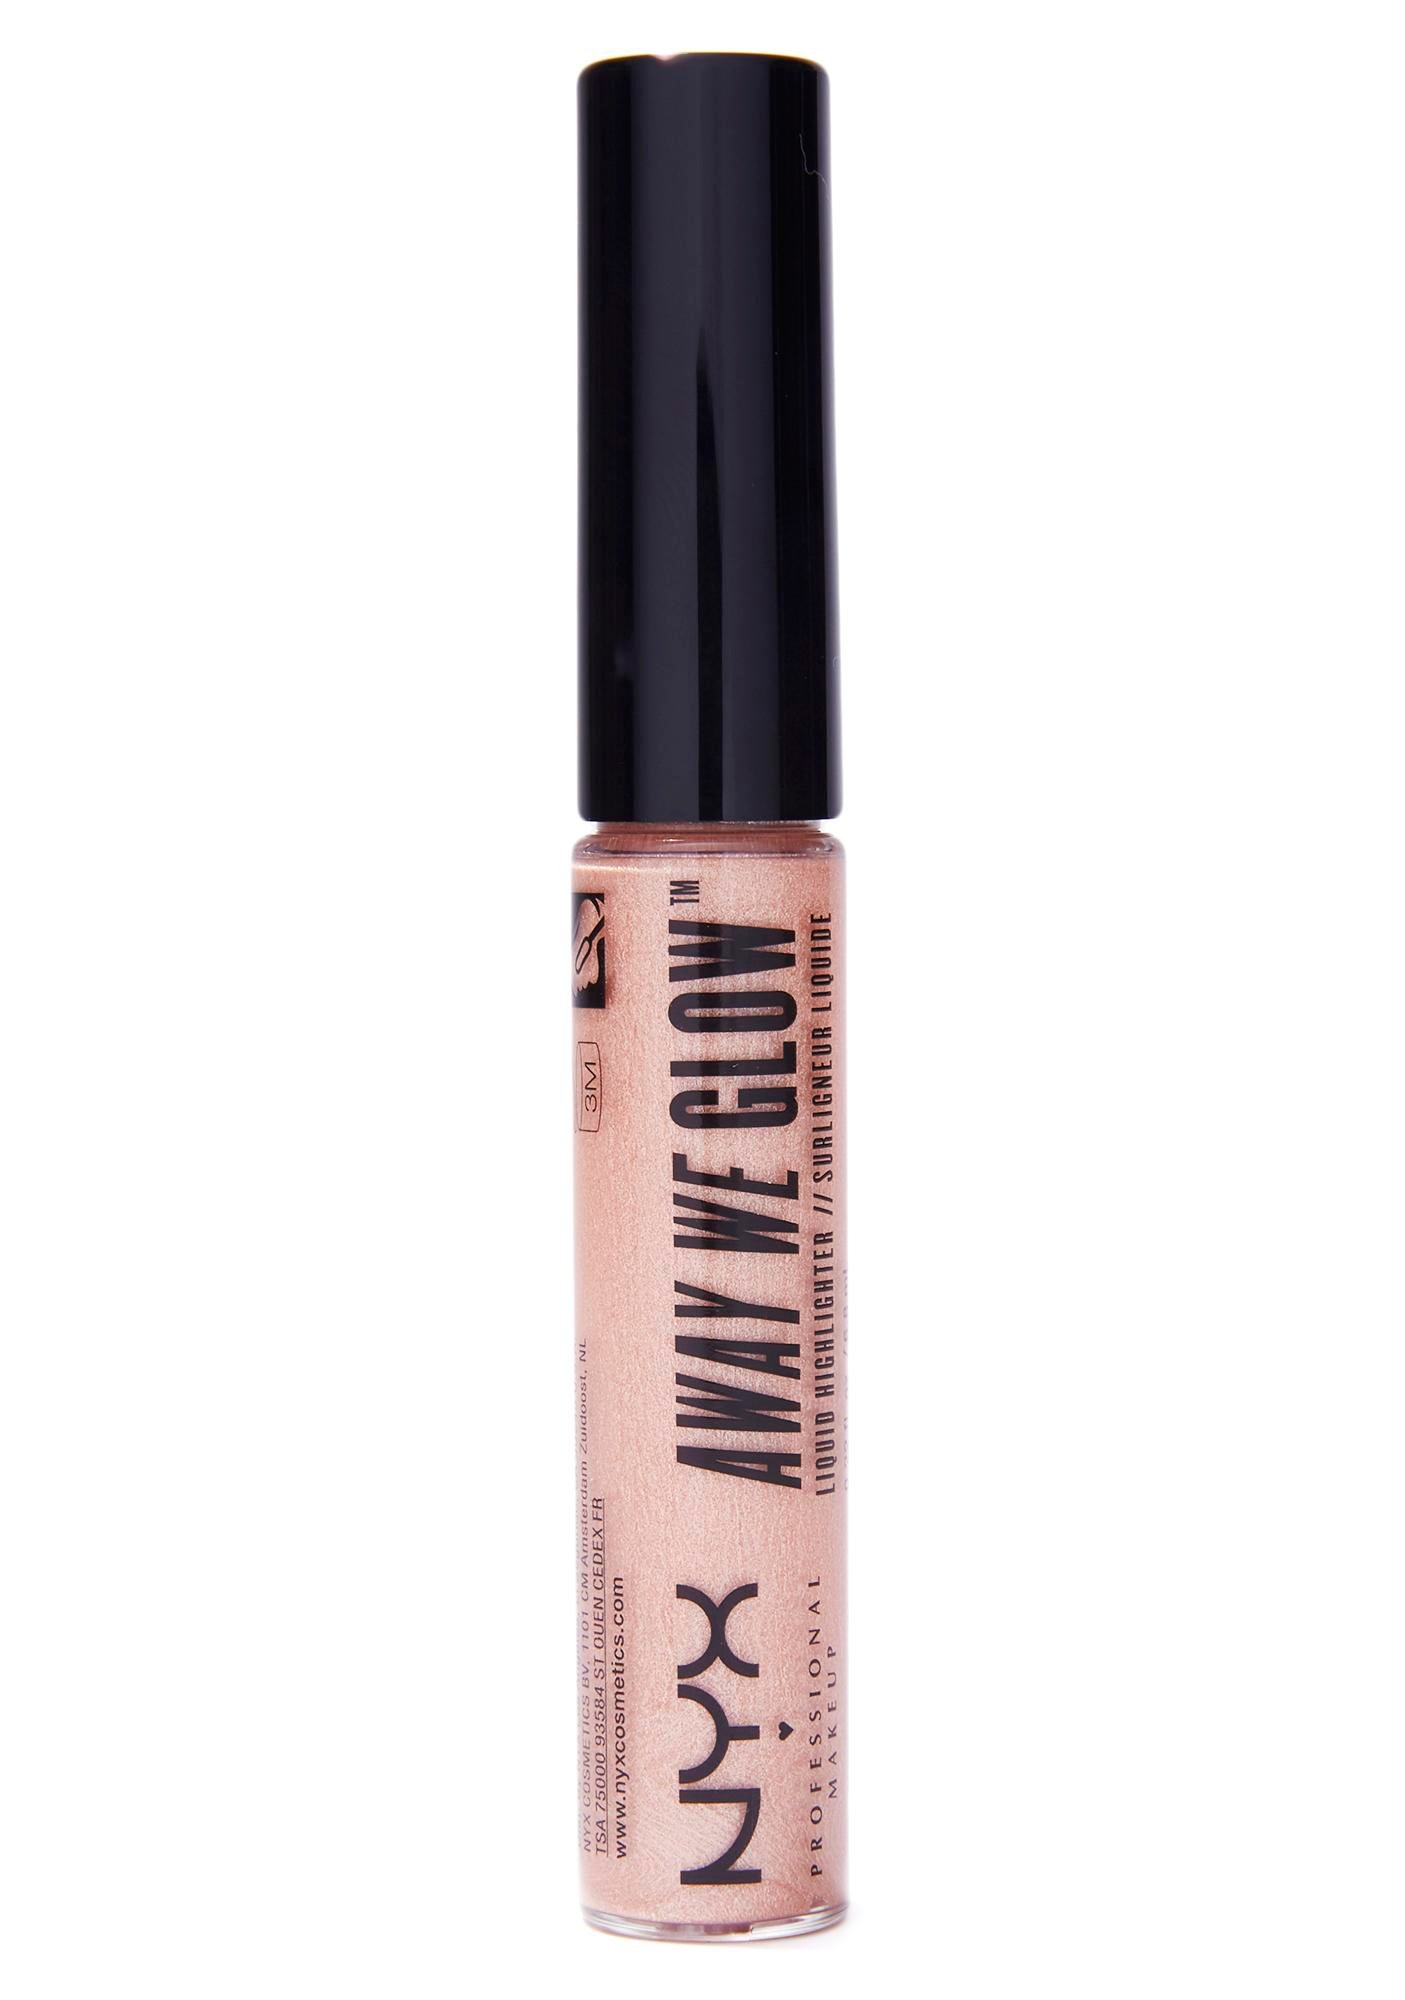 NYX Moon Beam Away We Glow Liquid Highlighter